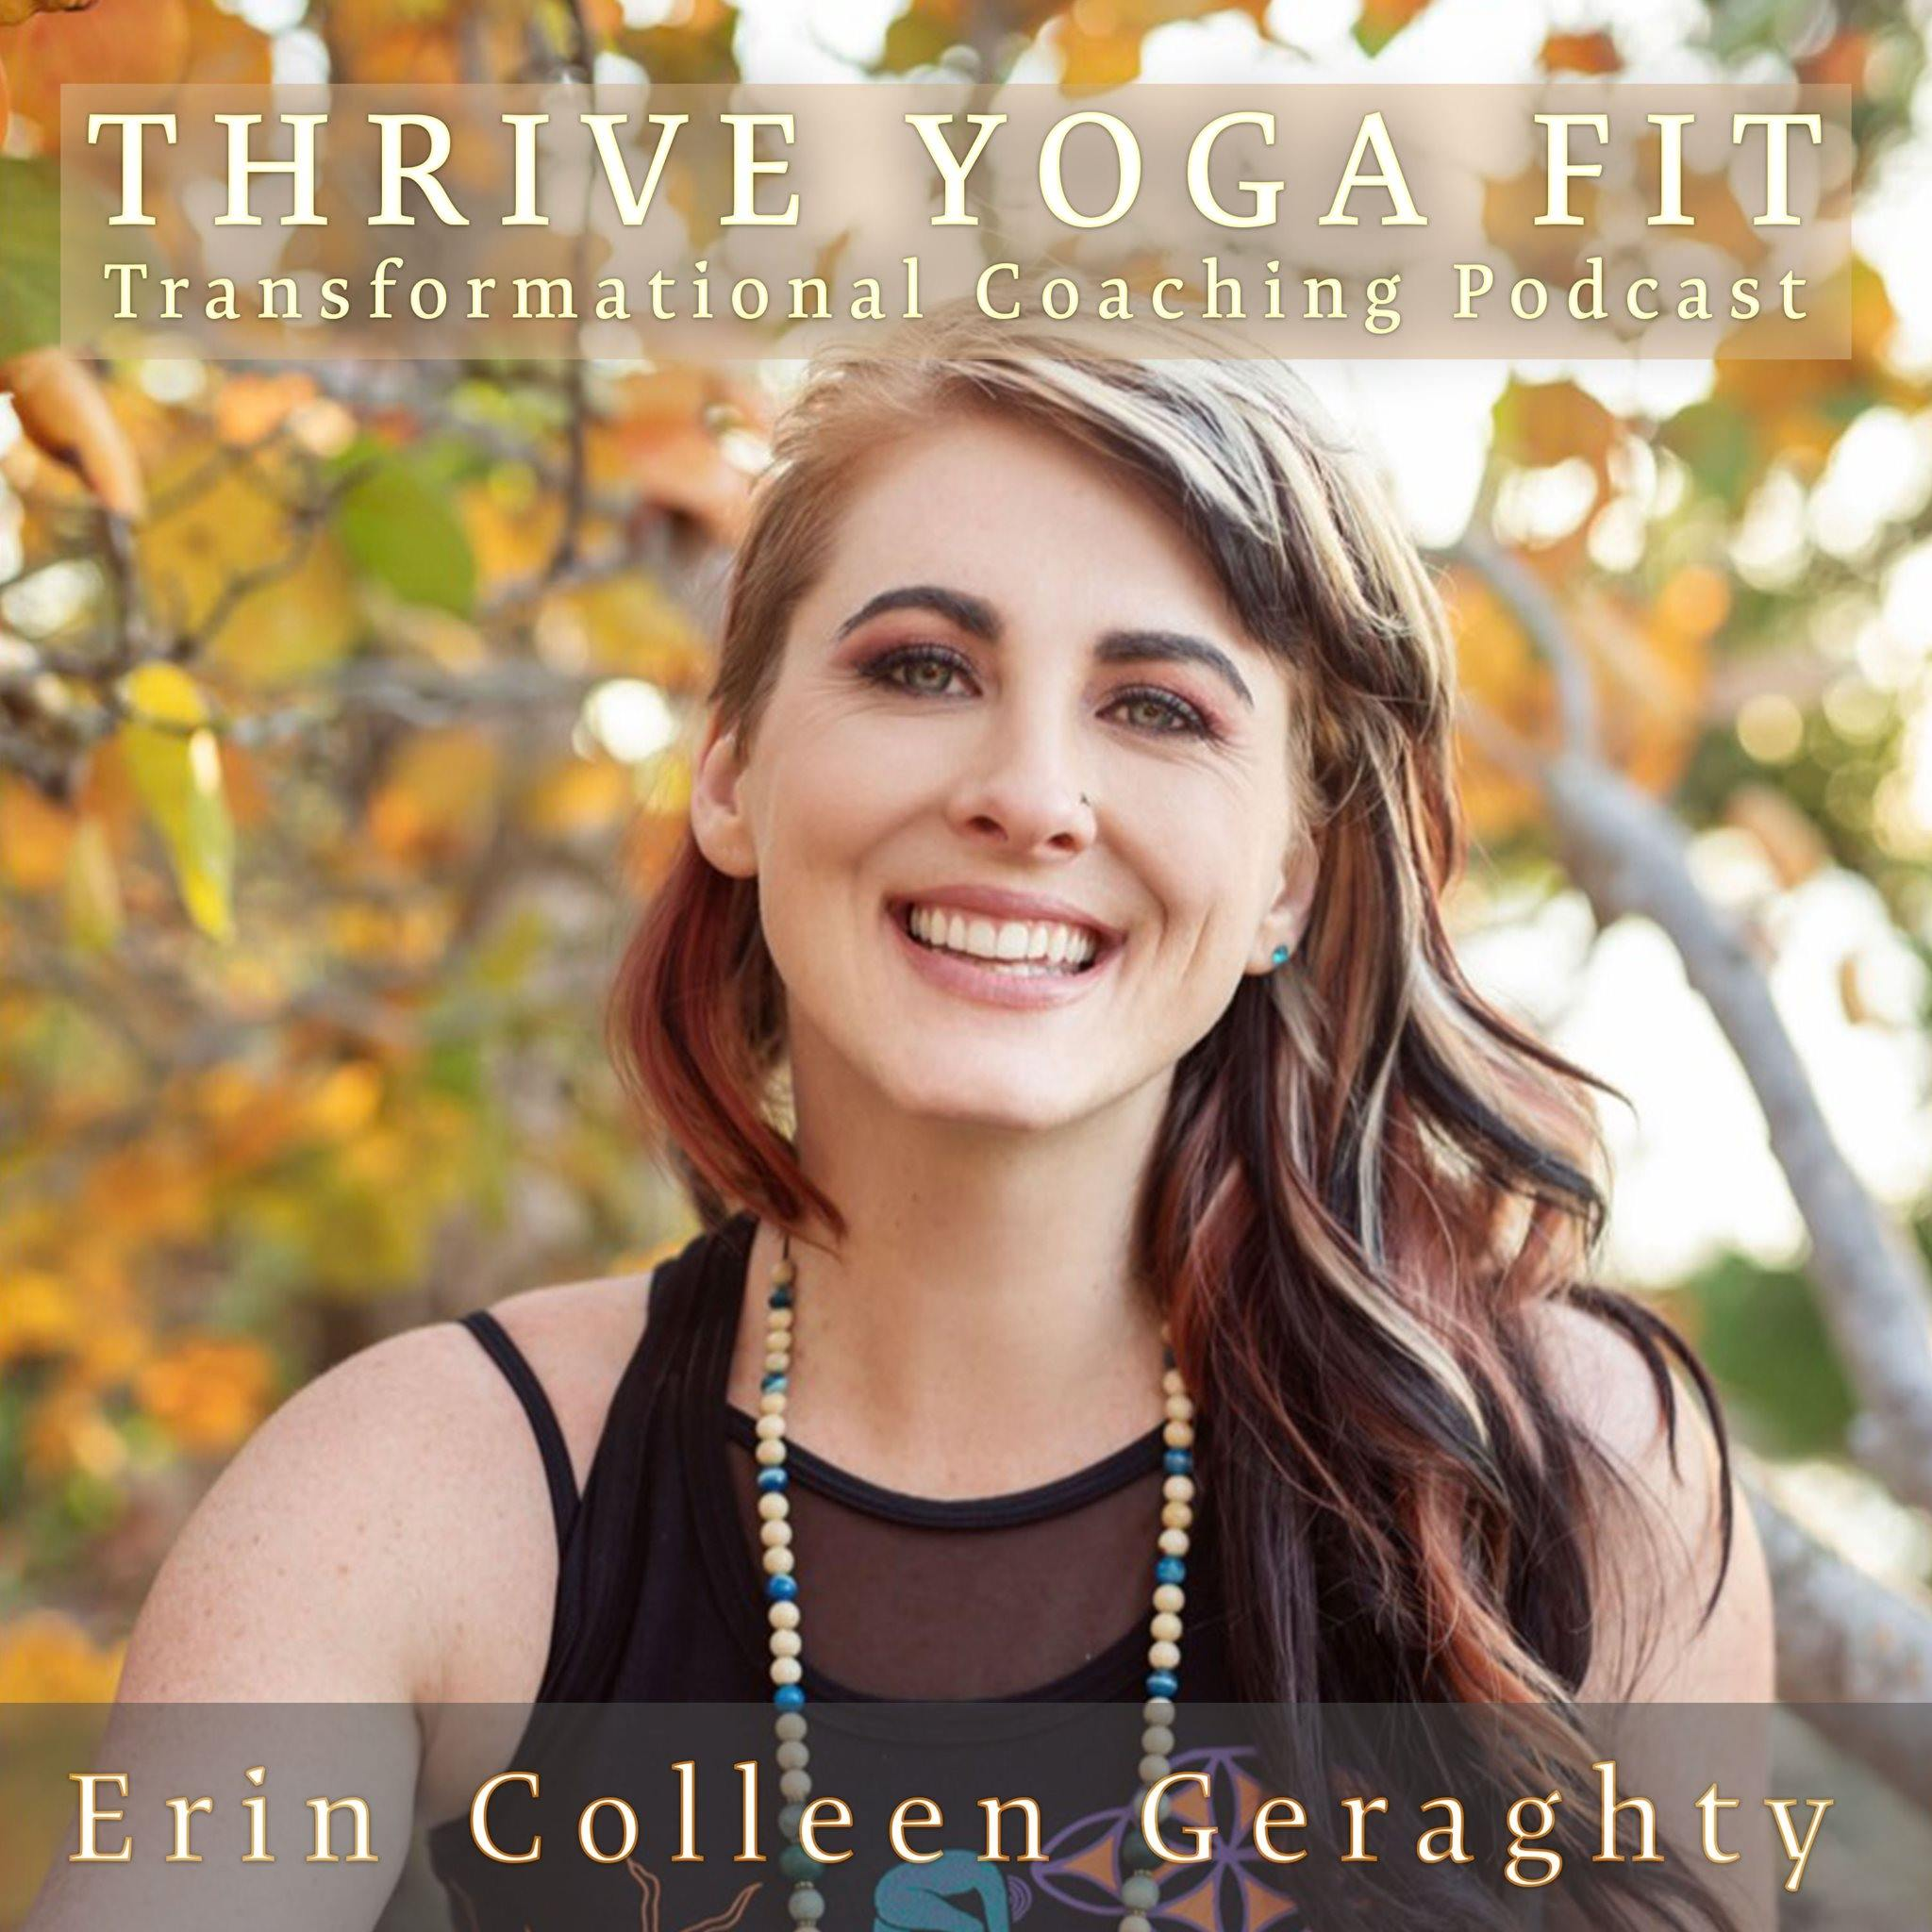 Thrive Yoga Fit Transformational Coaching Podcast